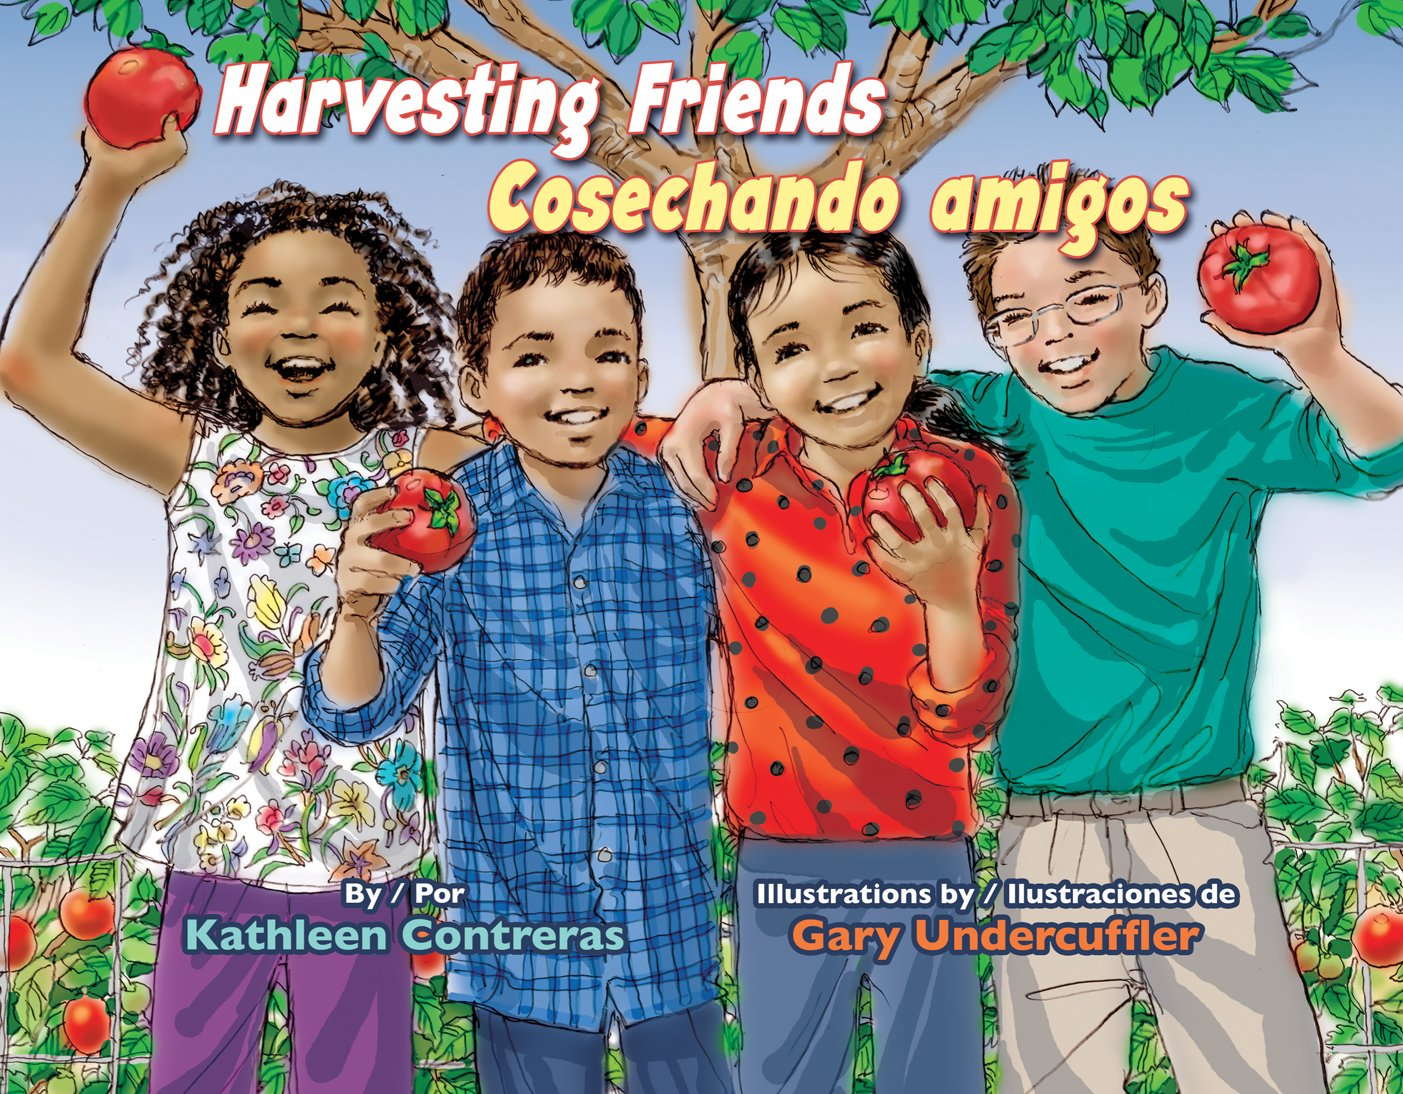 Harvesting Friends: Cosechando Amigos